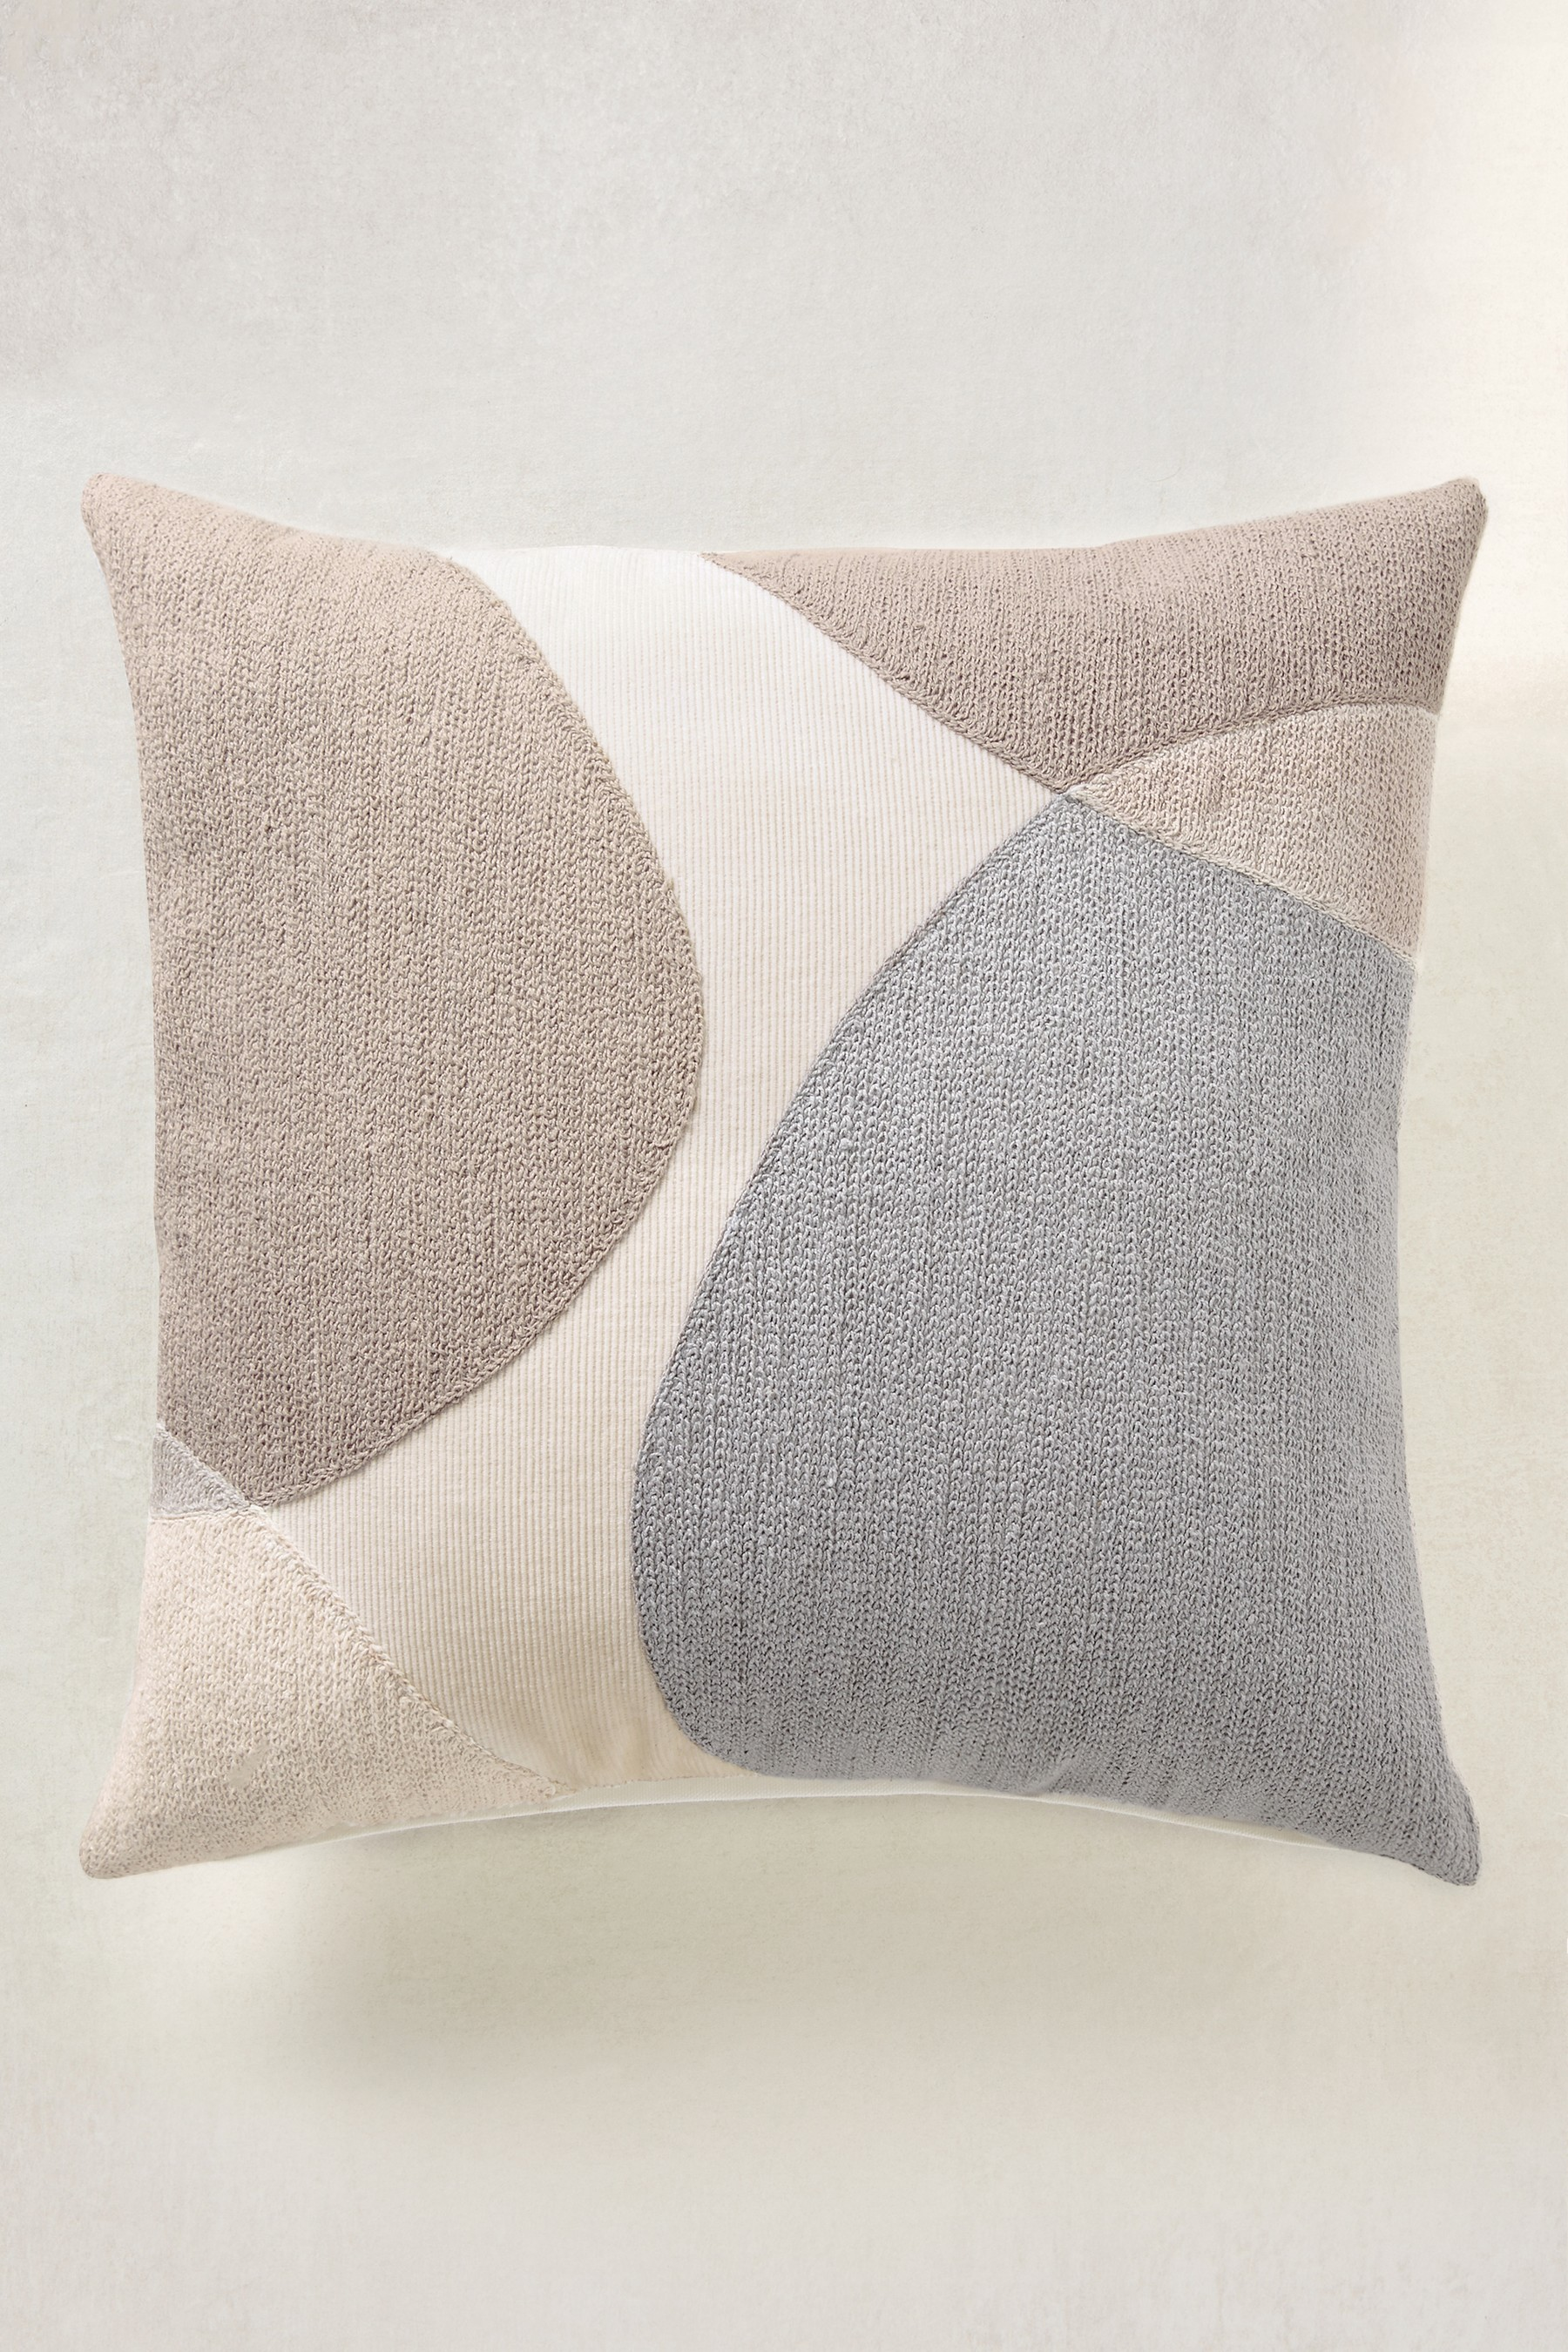 Next Crewel Work Abstract Cushion Natural Cushions Scandinavian Design Home Deco